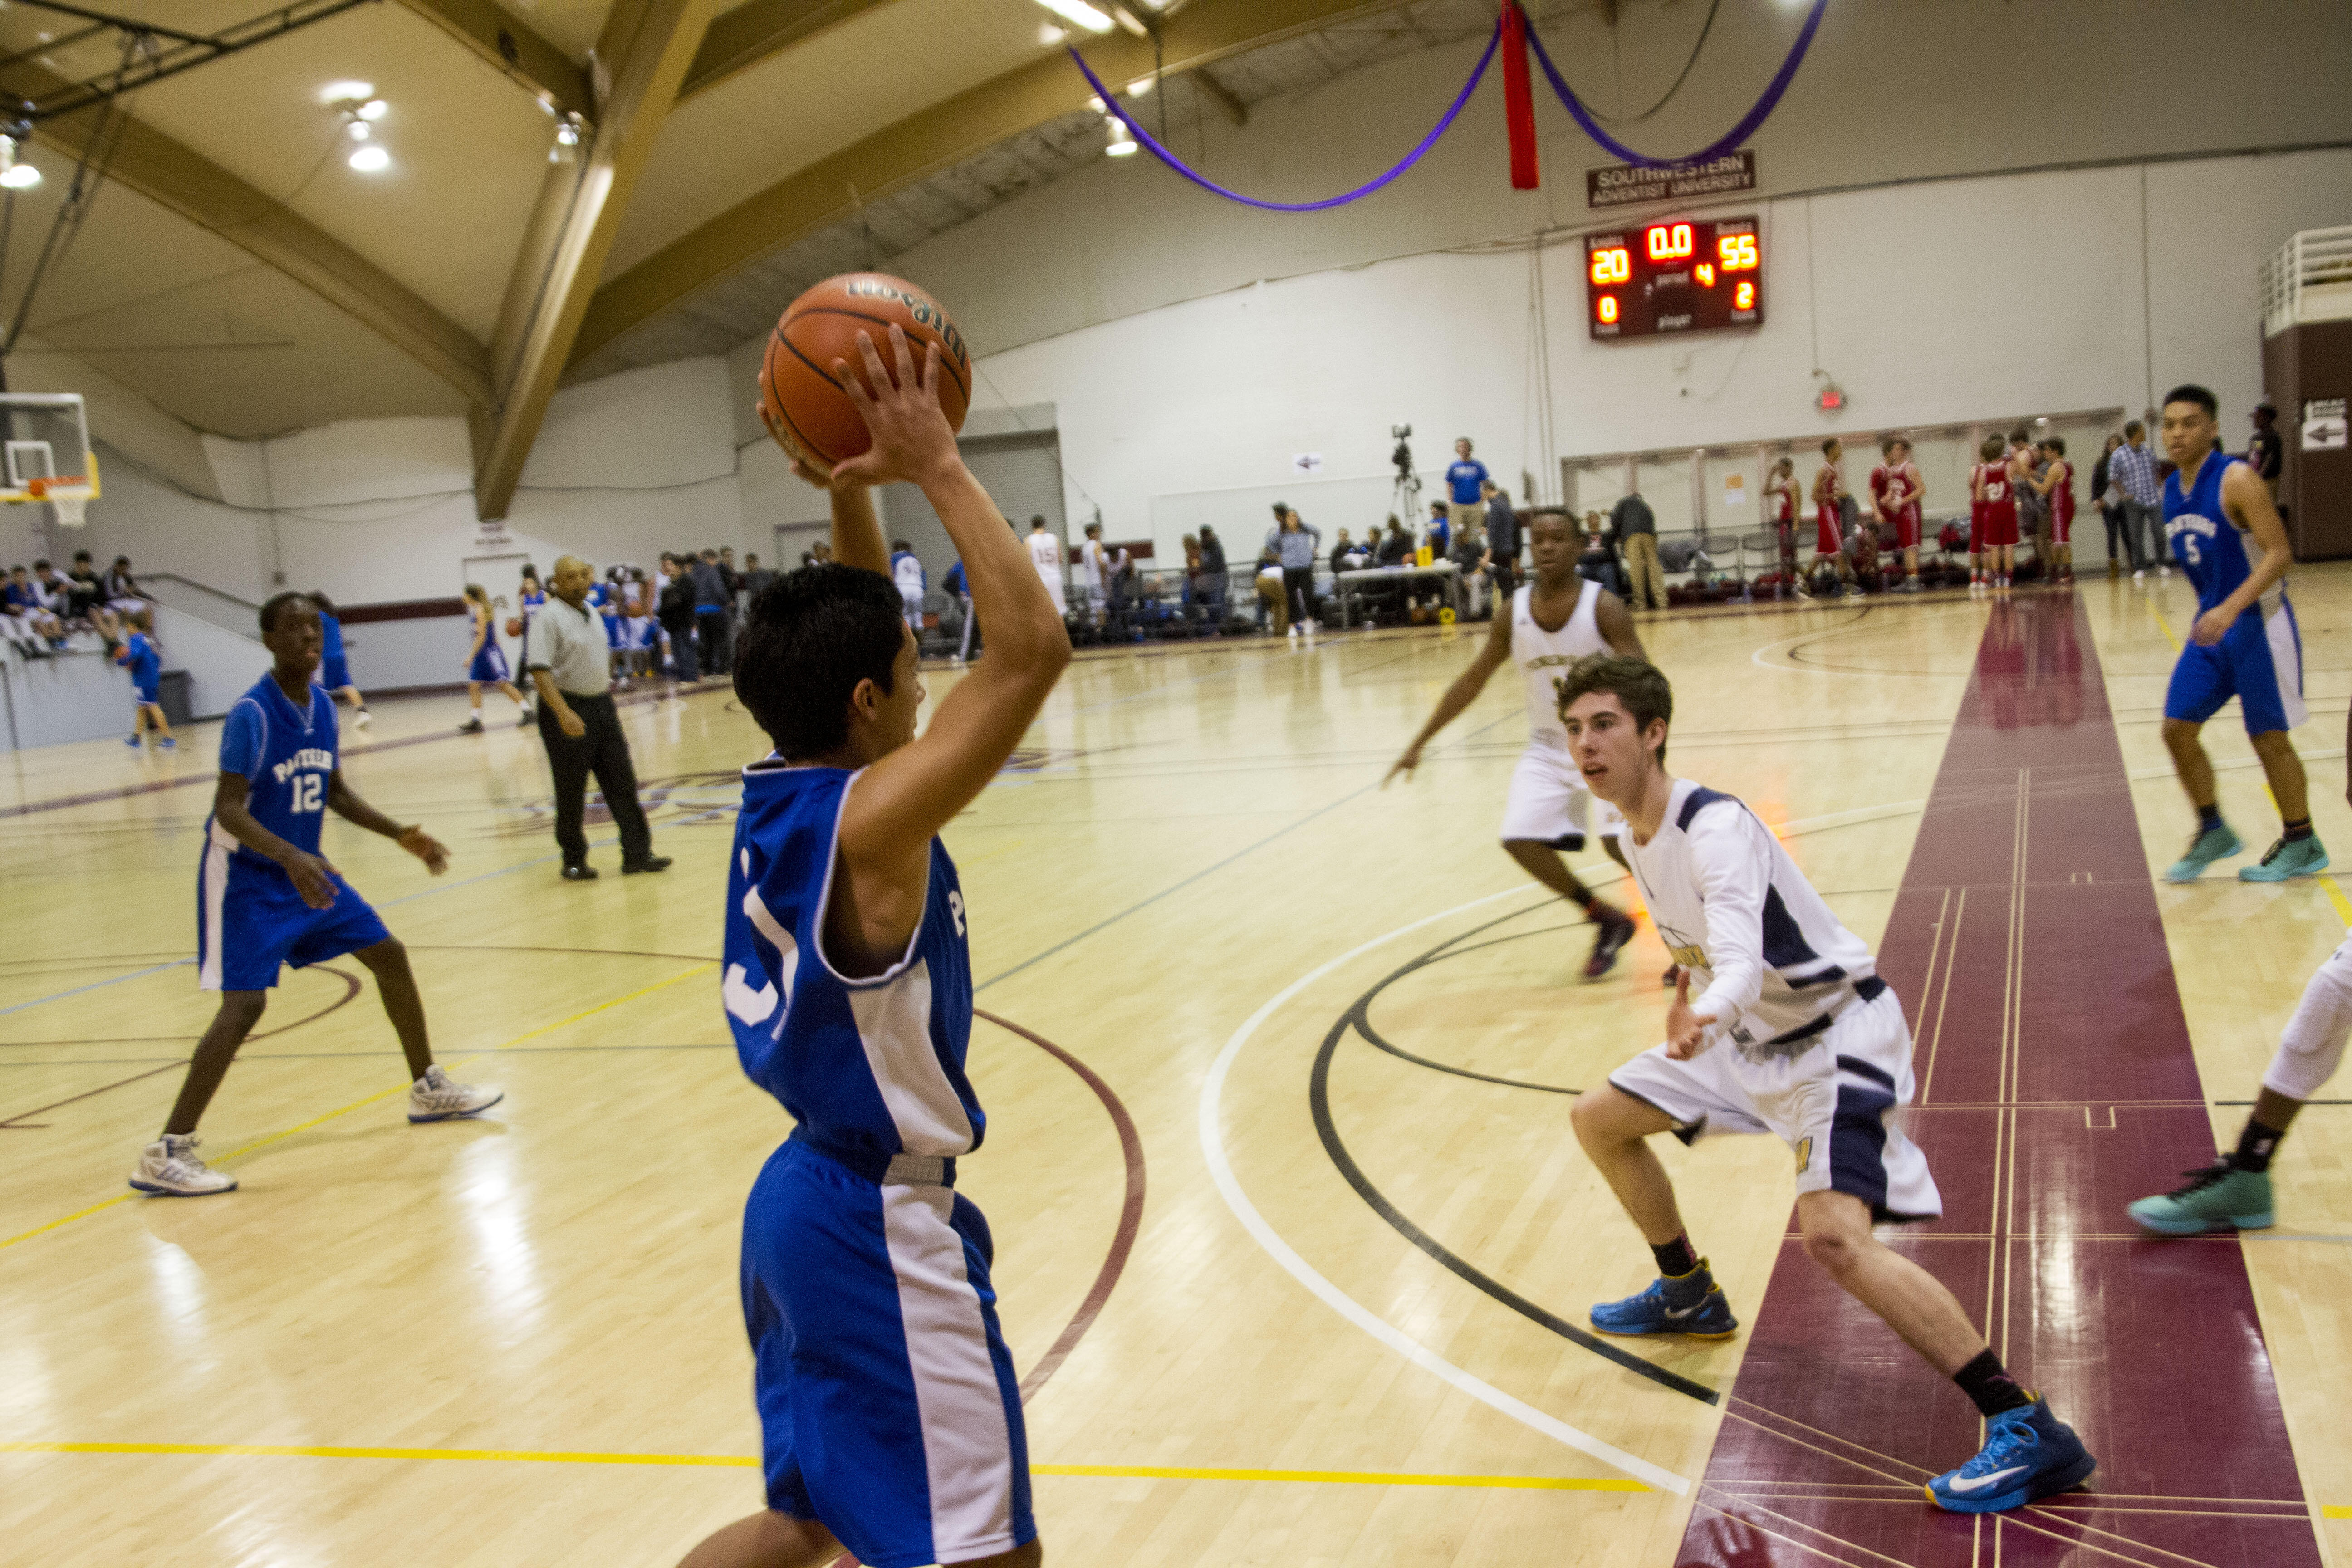 A high school basketball player holds the ball over his head as he looks to see who is open